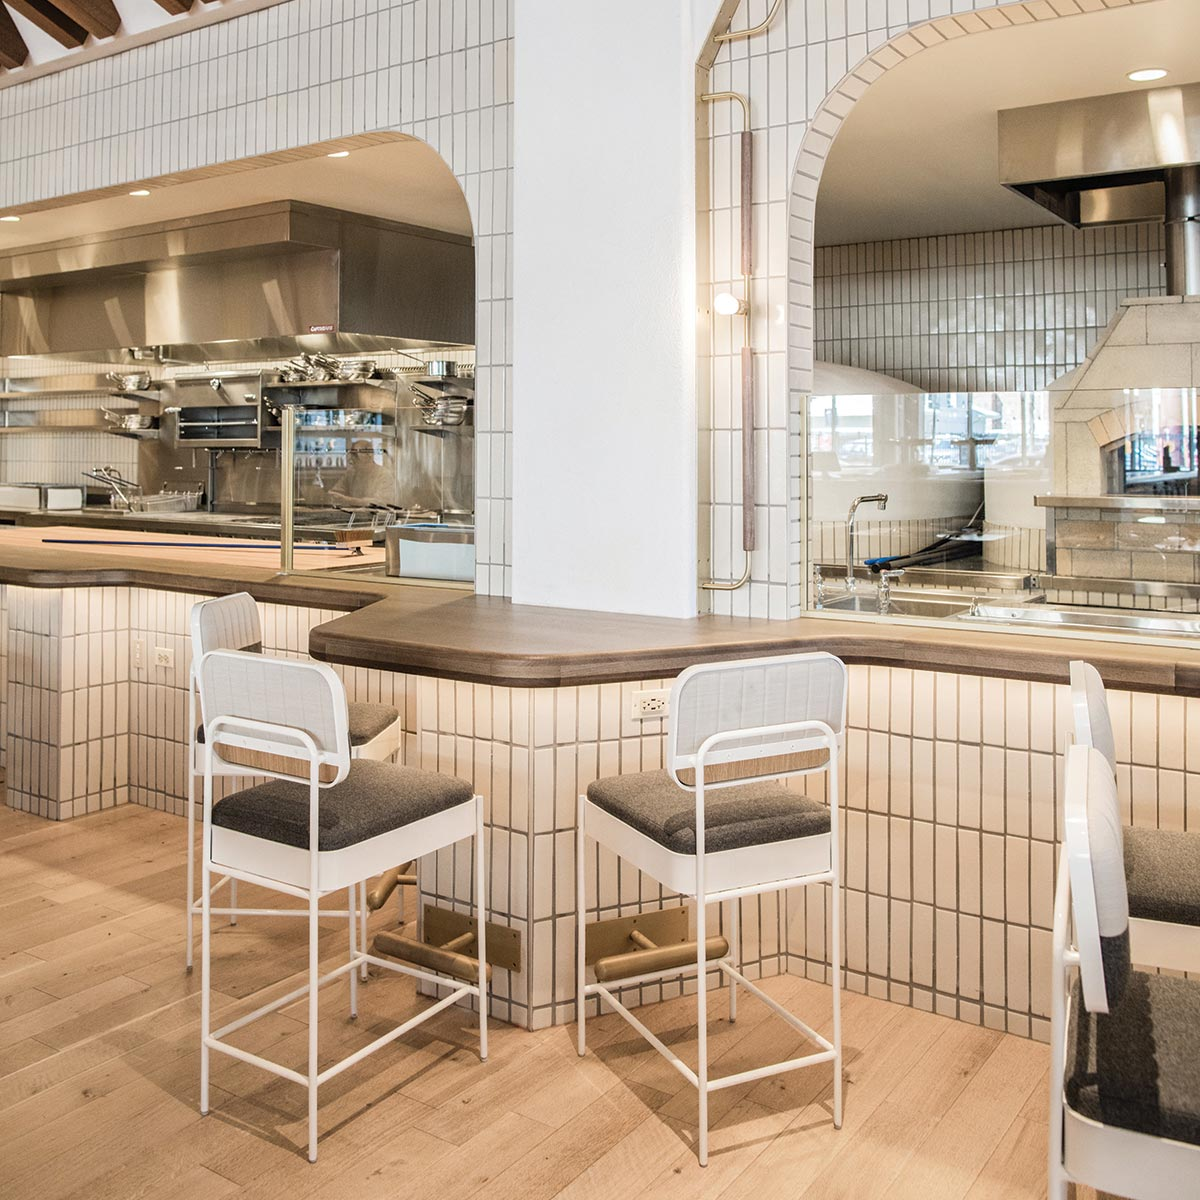 Pacific Standard Time Restaurant Peninsula Style Seating